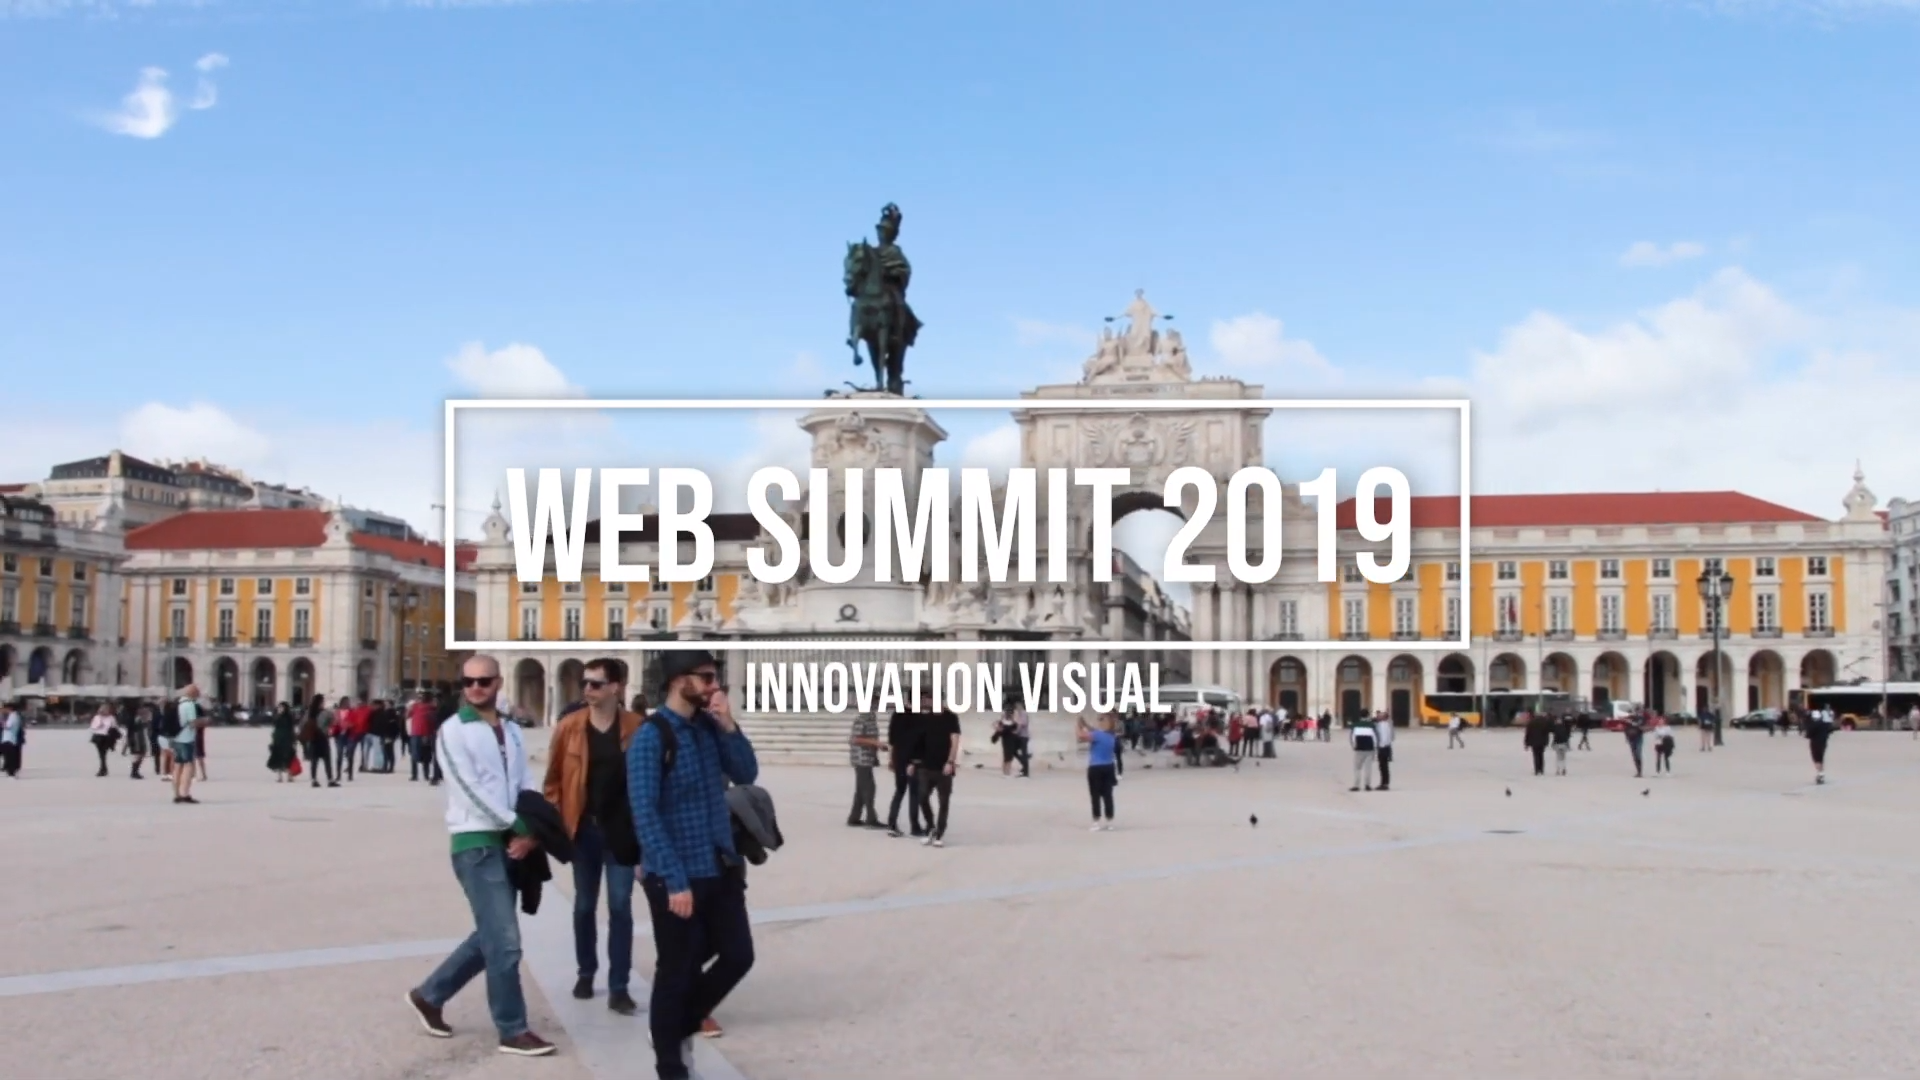 Web Summit 2019 Highlights _ Actionable Insights to Take Into the New Year 0-2 screenshot